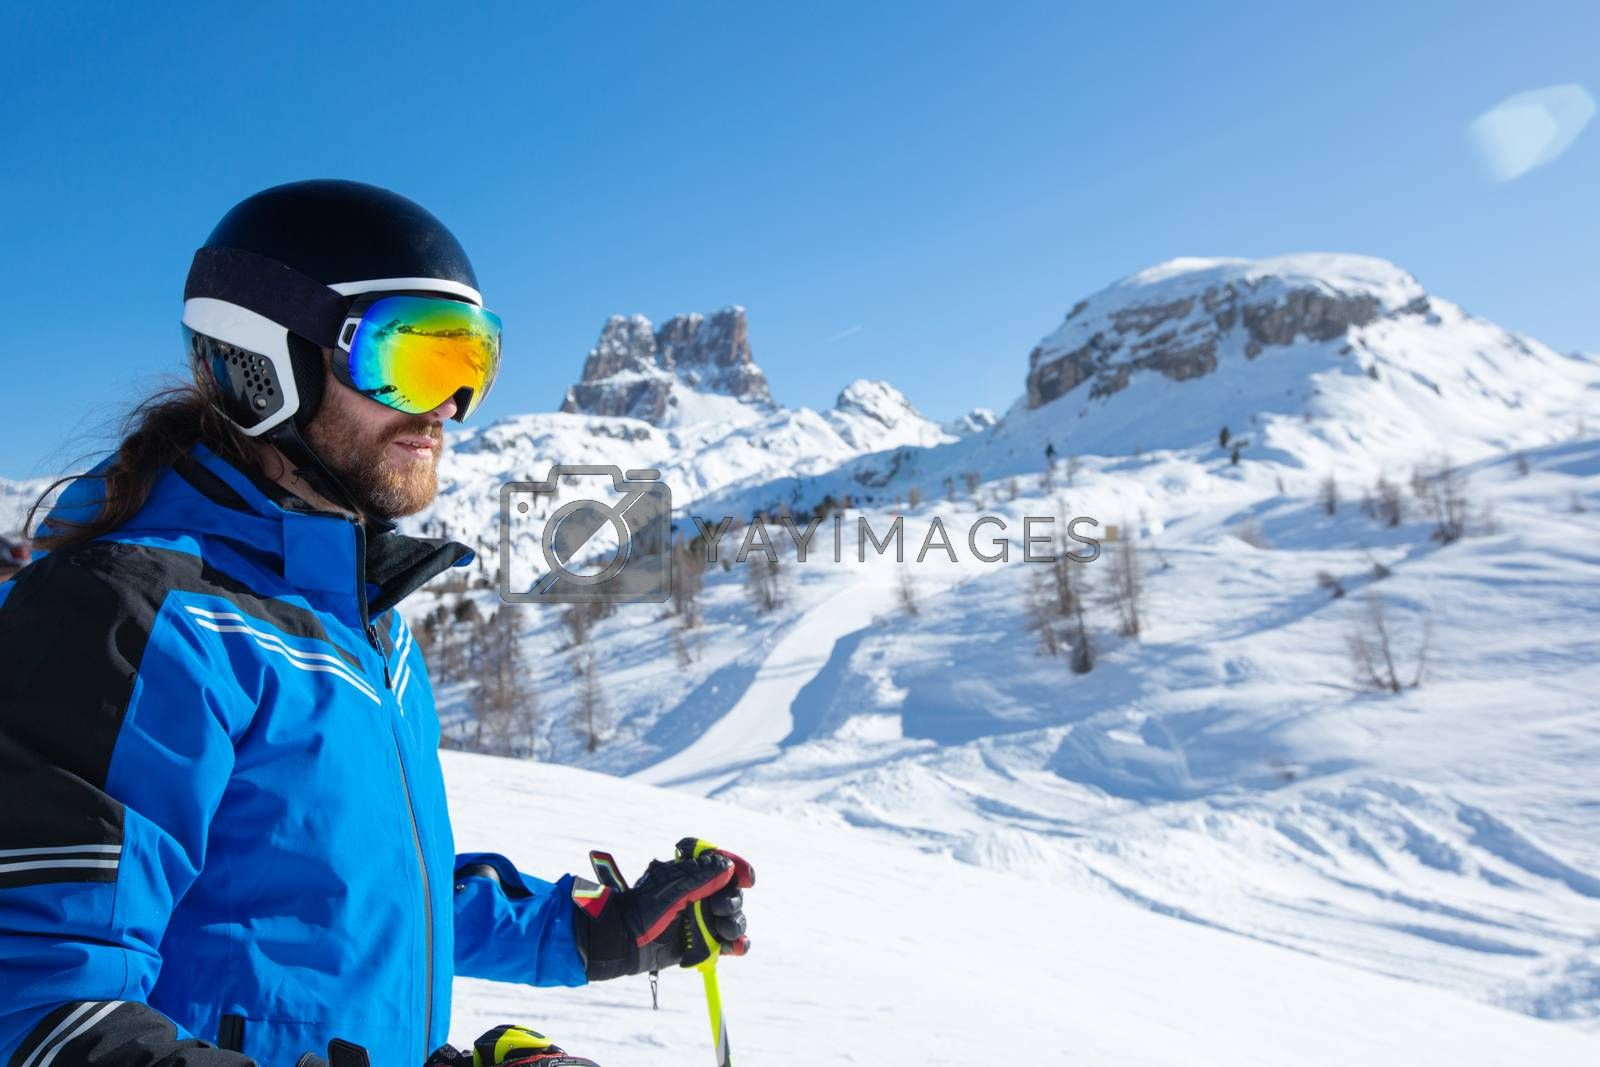 Royalty free image of Skier stand on slope in winter mountains by destillat